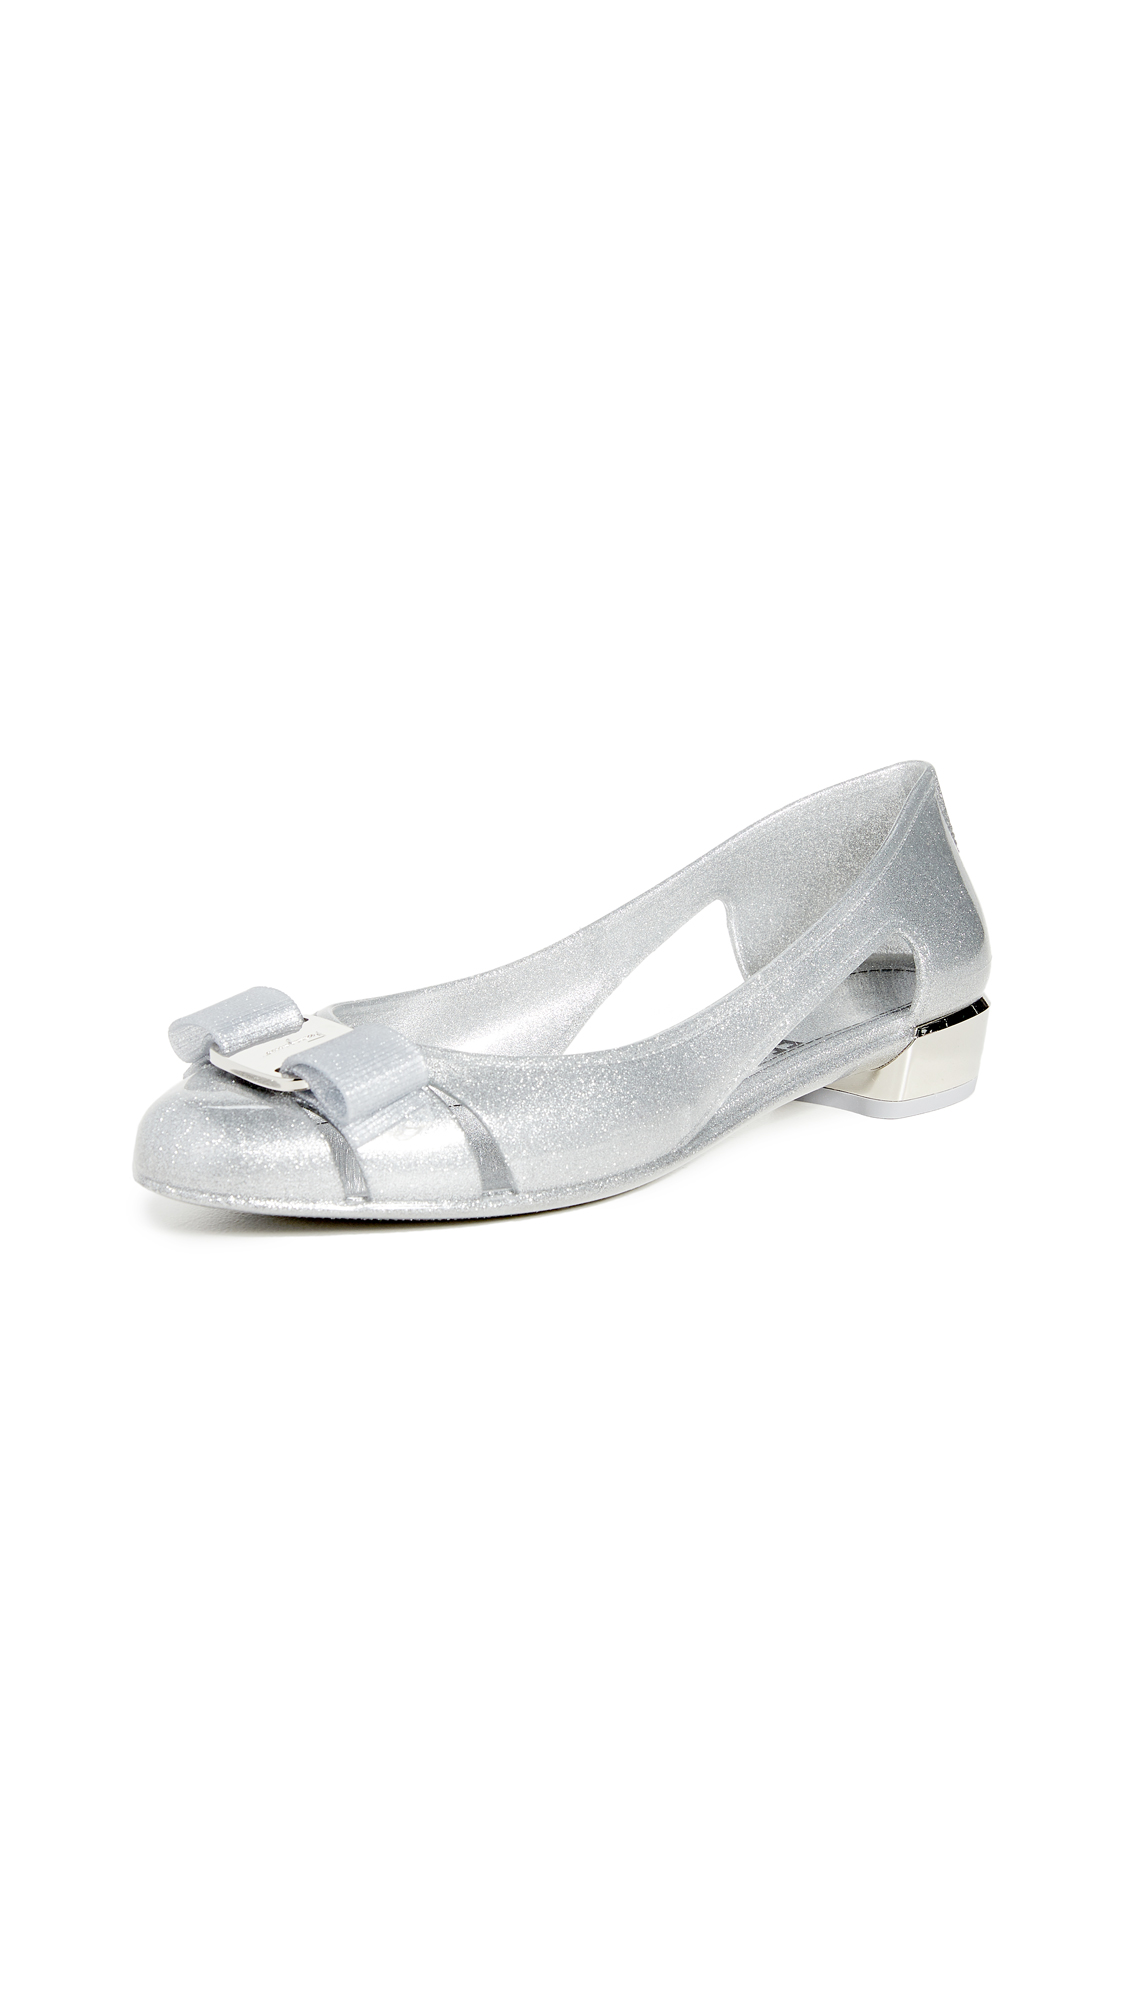 Buy Salvatore Ferragamo online - photo of Salvatore Ferragamo Vara Jelly Pumps